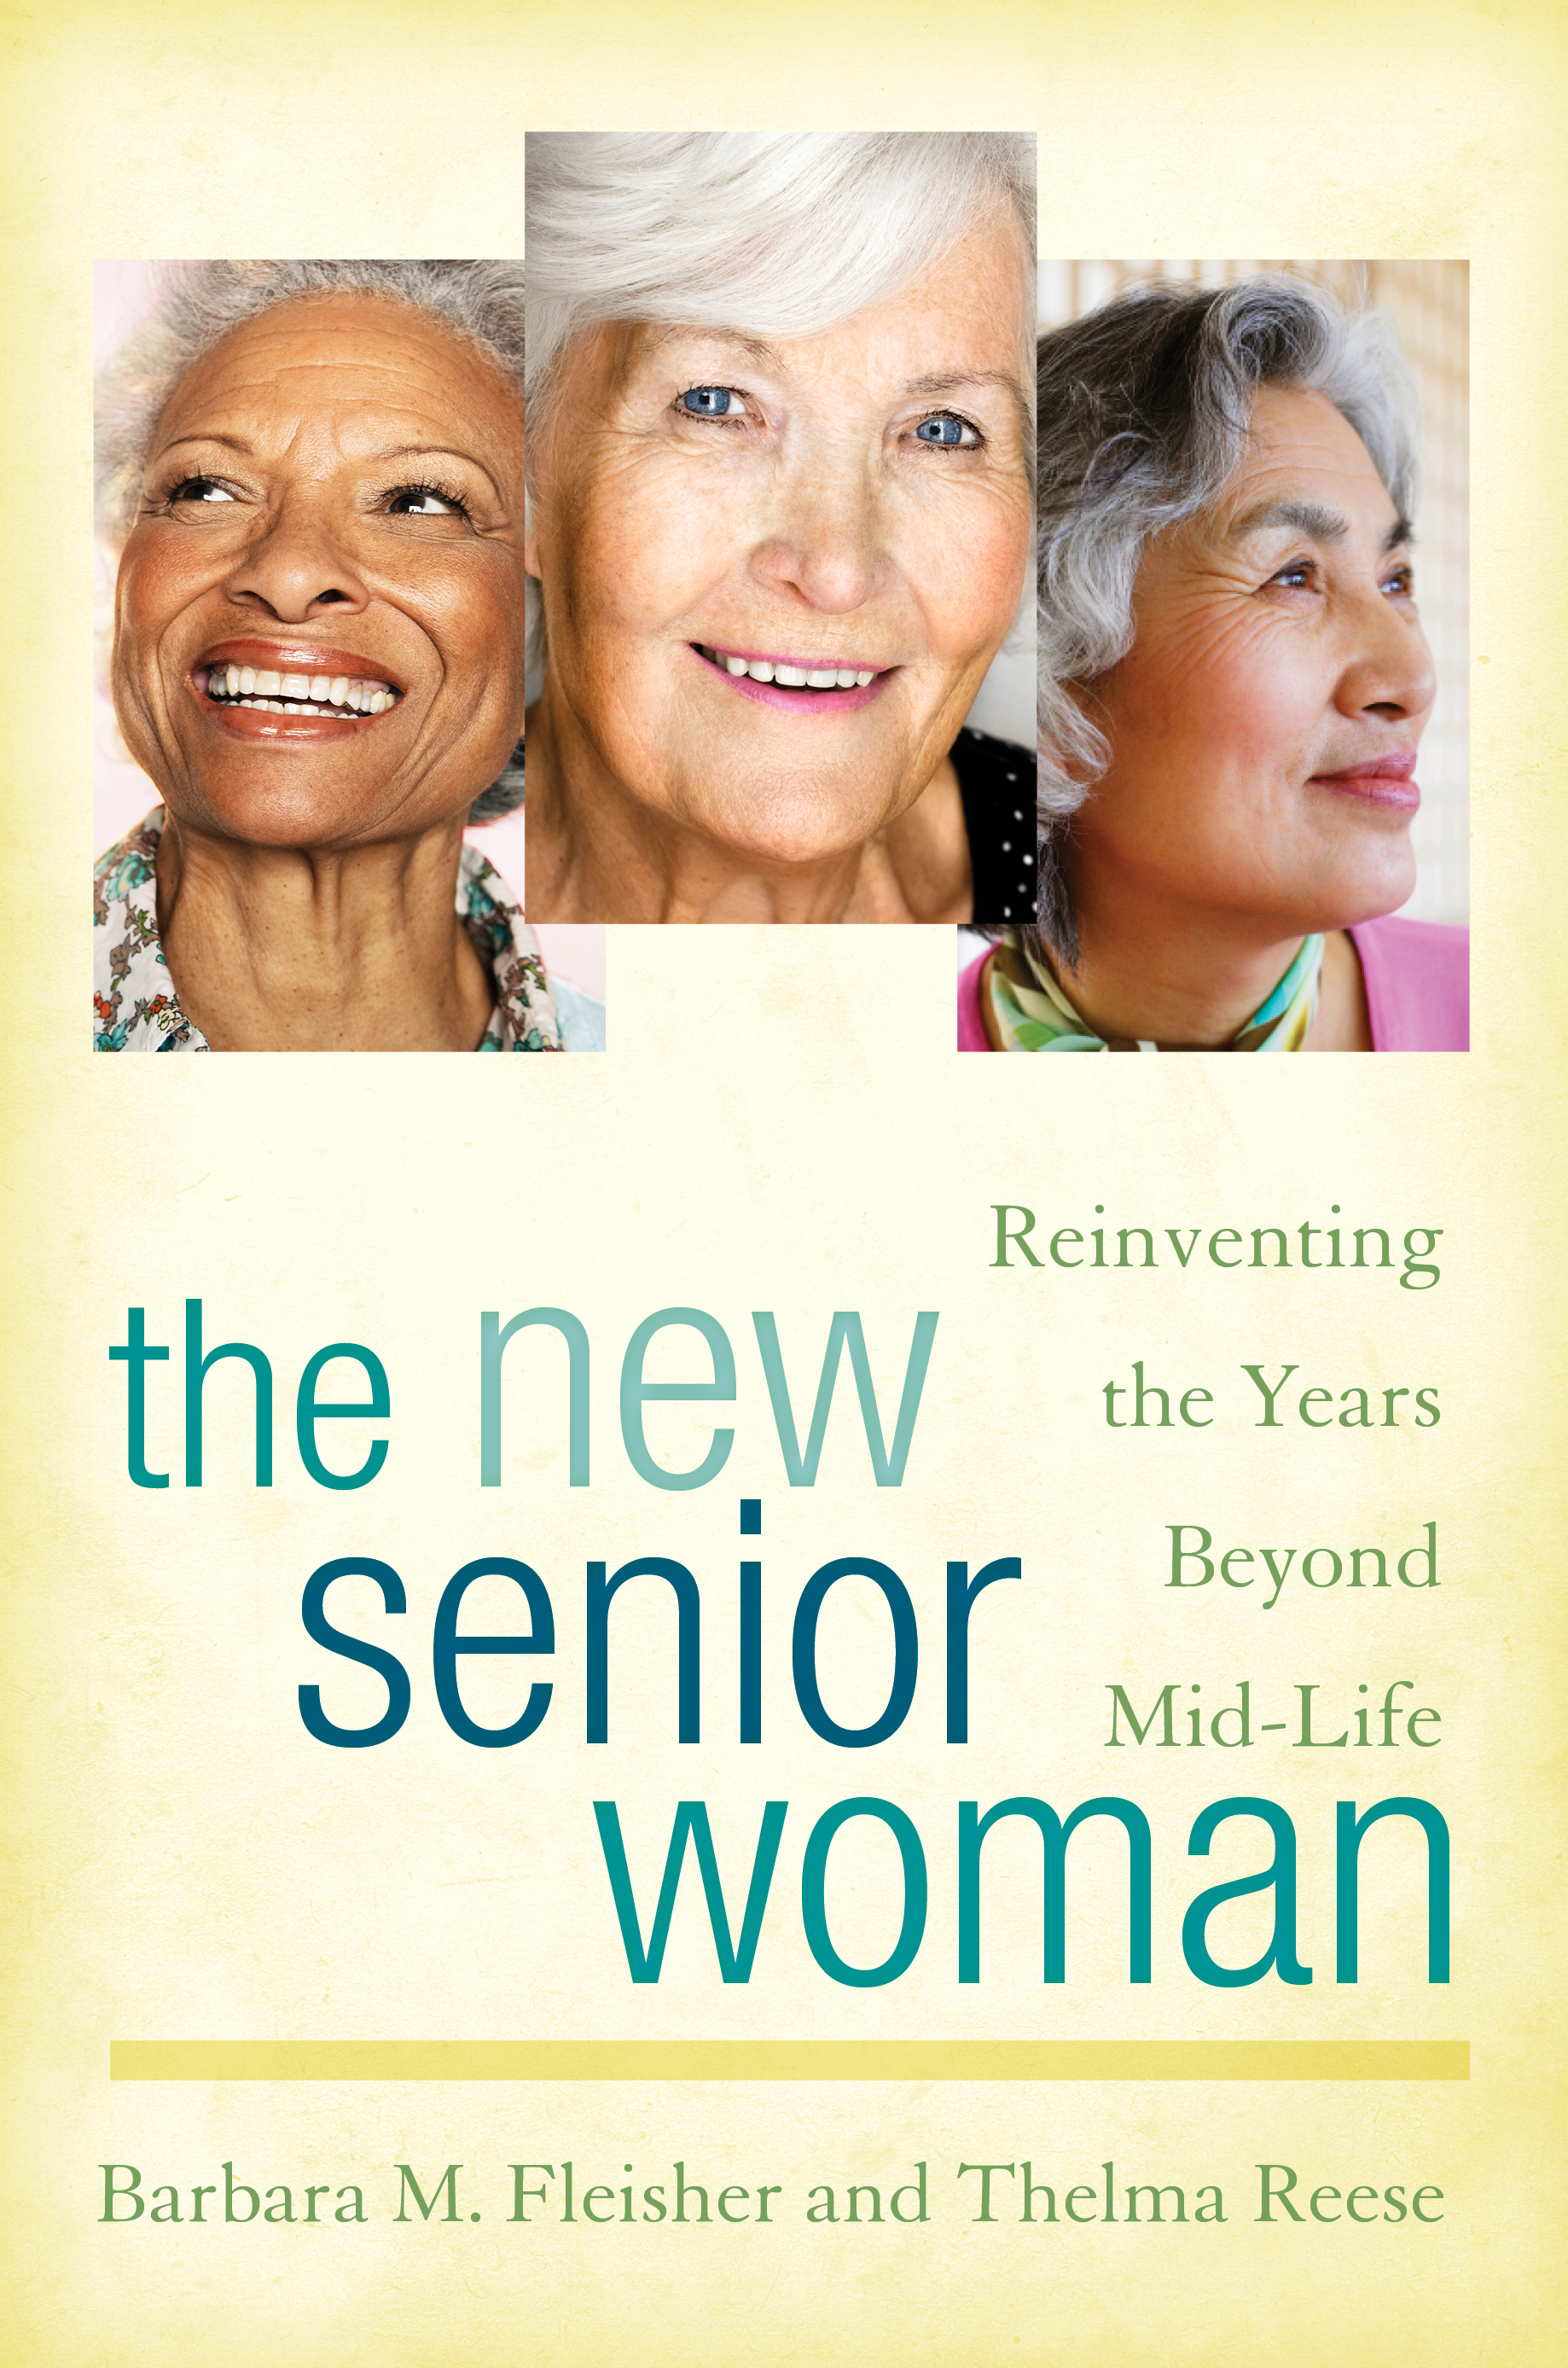 The New Senior Woman